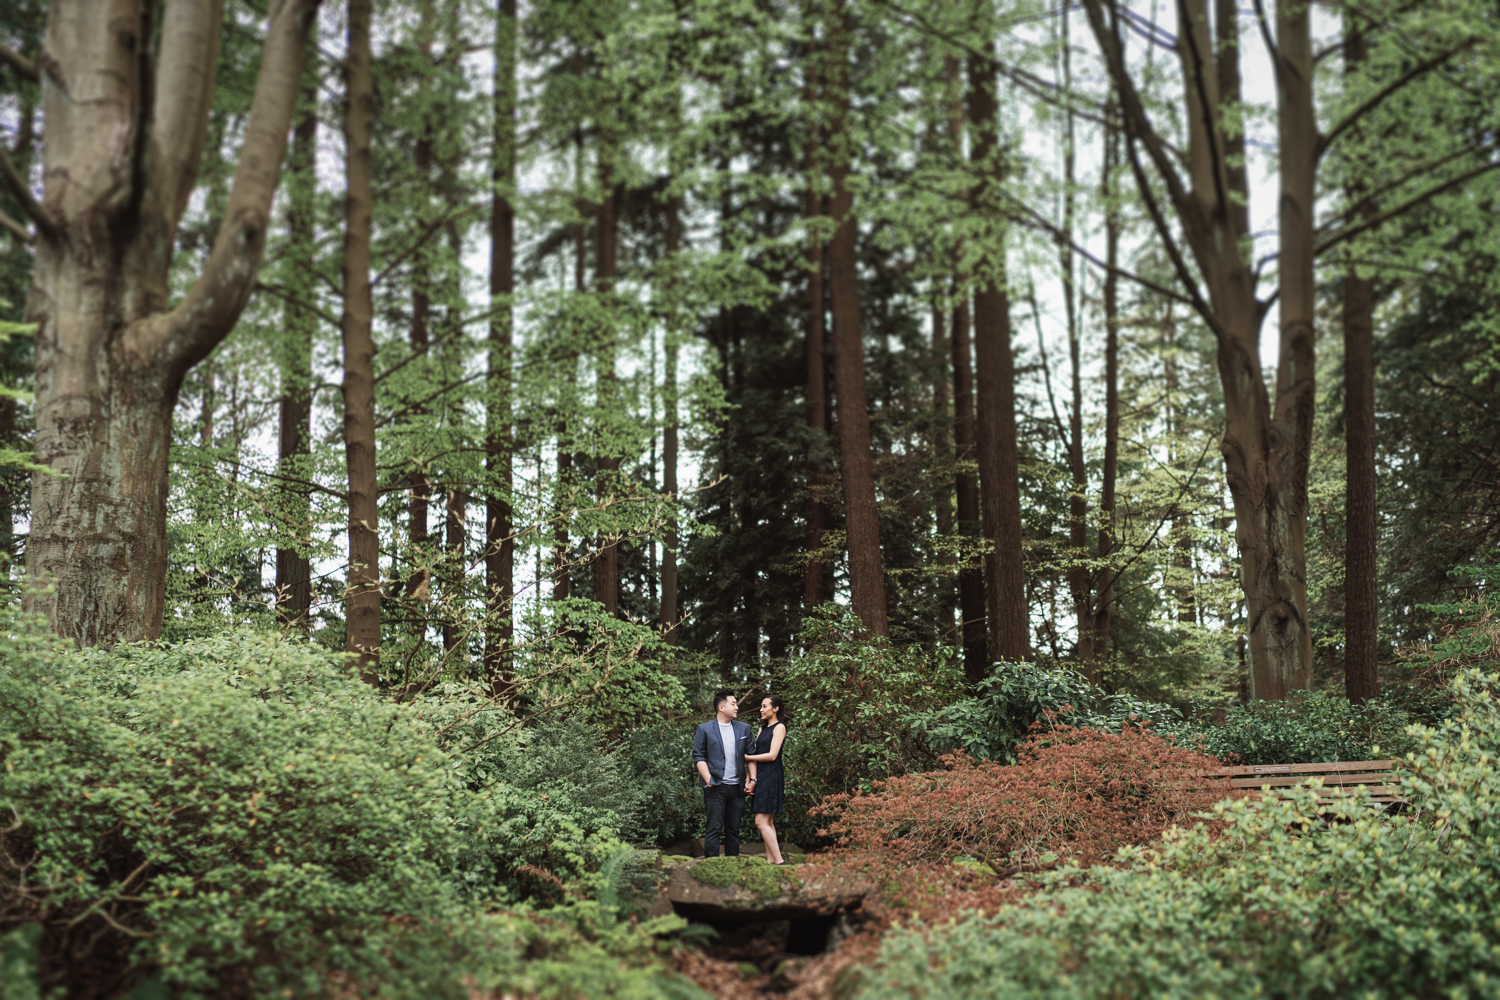 stanley park engagement photography in vancouver bc in spring with cherry blossoms